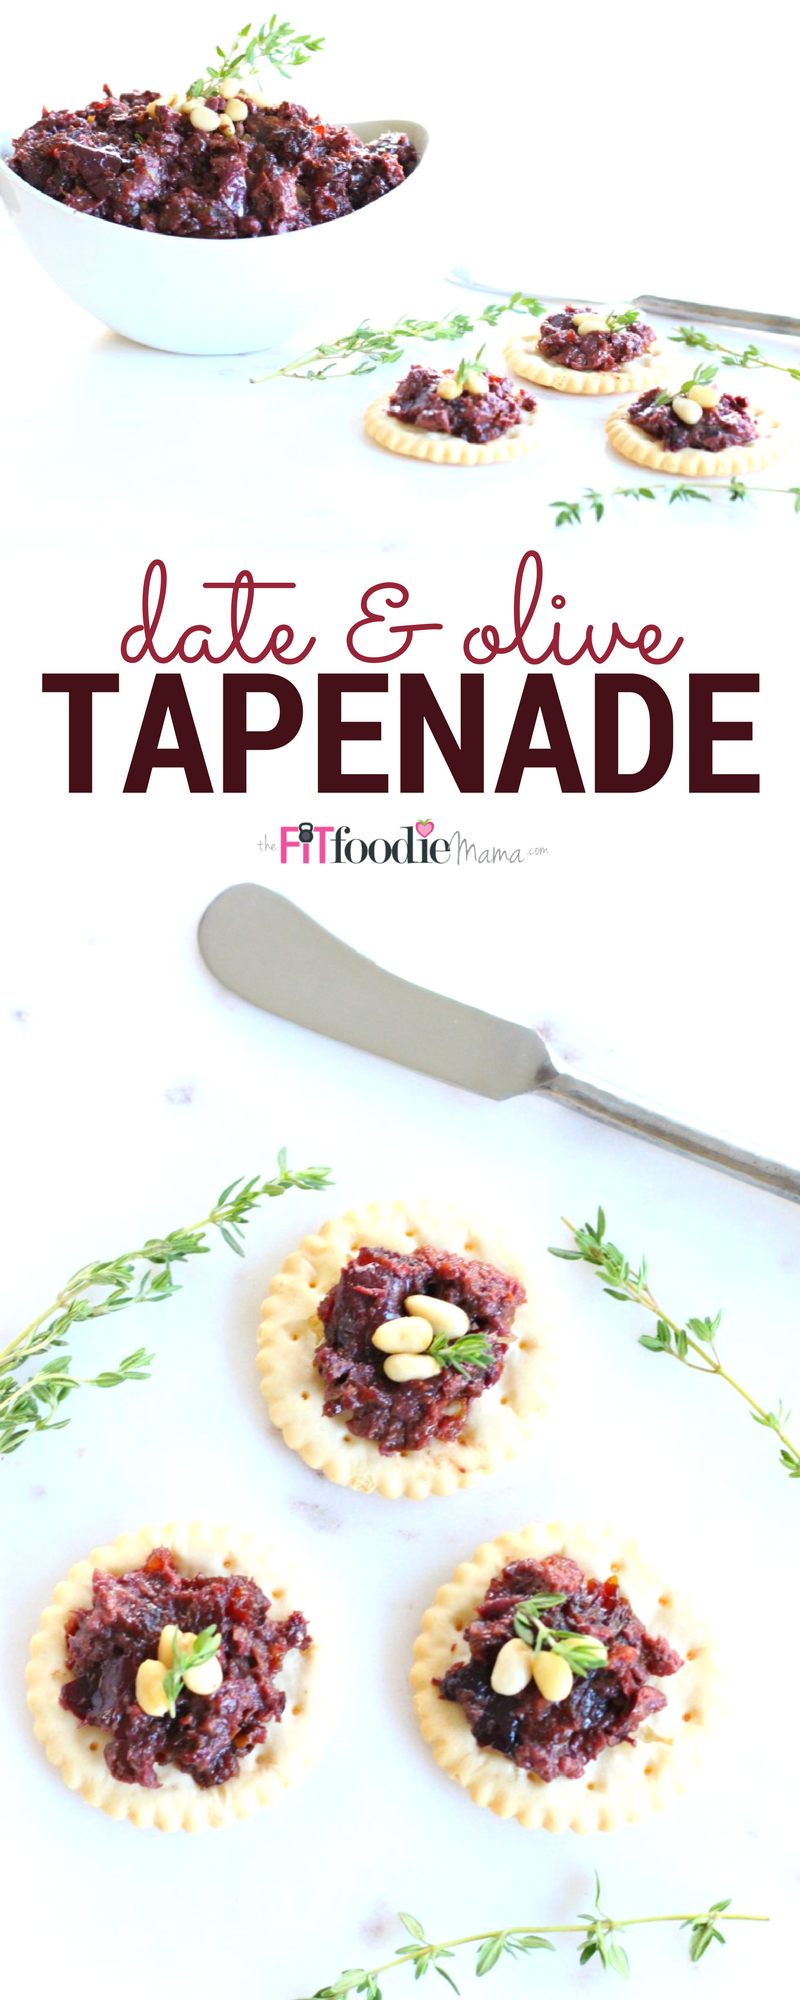 This 3 ingredient Medjool date and kalamata olive tapenade is the perfect holiday party appetizer.  It's gluten free, dairy free, vegan and allergy friendly and takes less than 5 minutes to make!